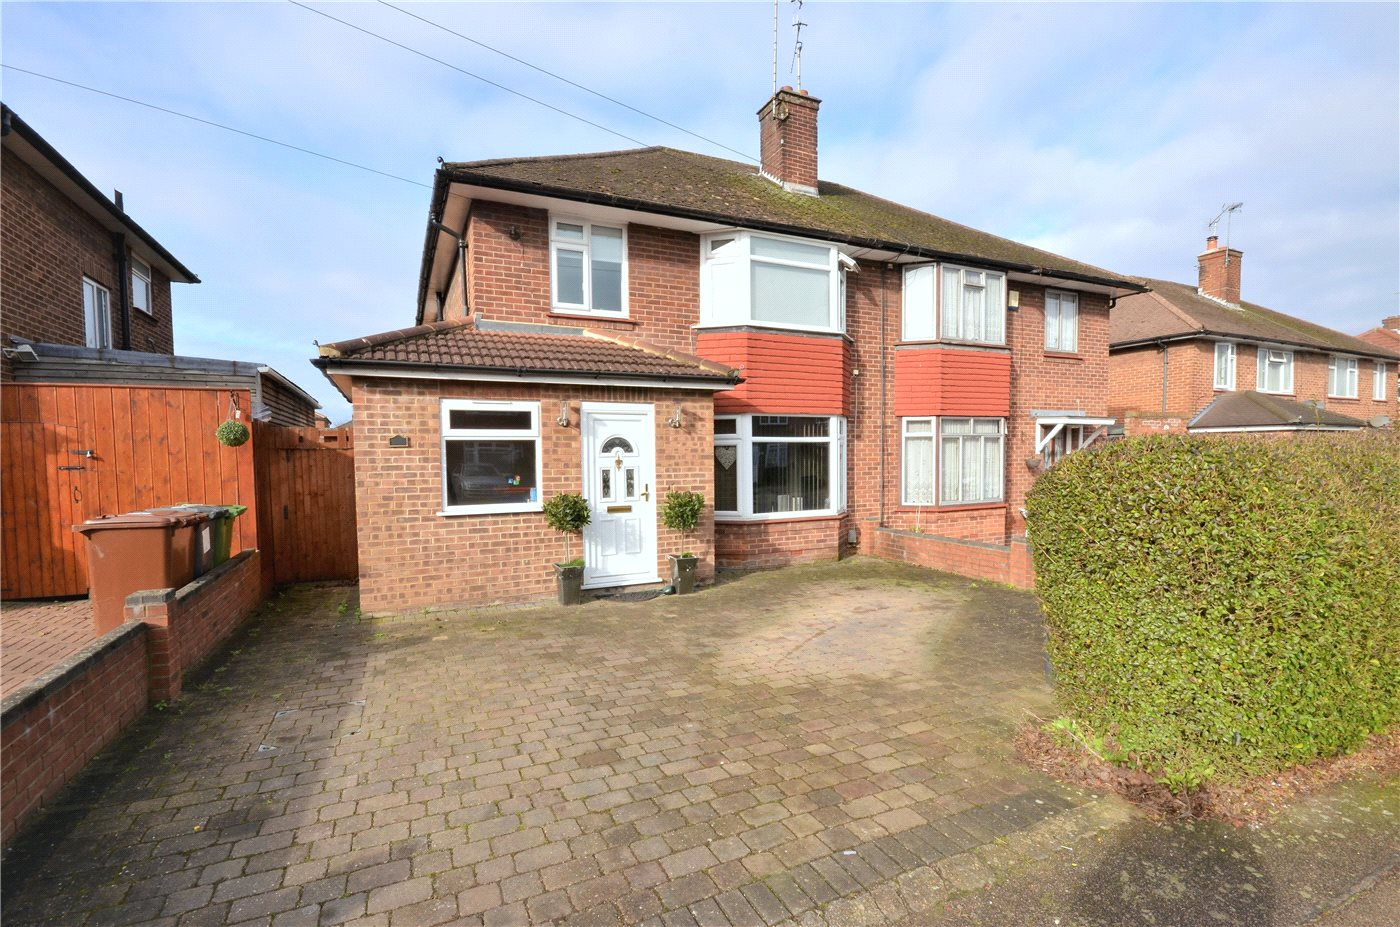 4 Bedrooms Semi Detached House for sale in Thornbury Gardens, Borehamwood, Hertfordshire, WD6